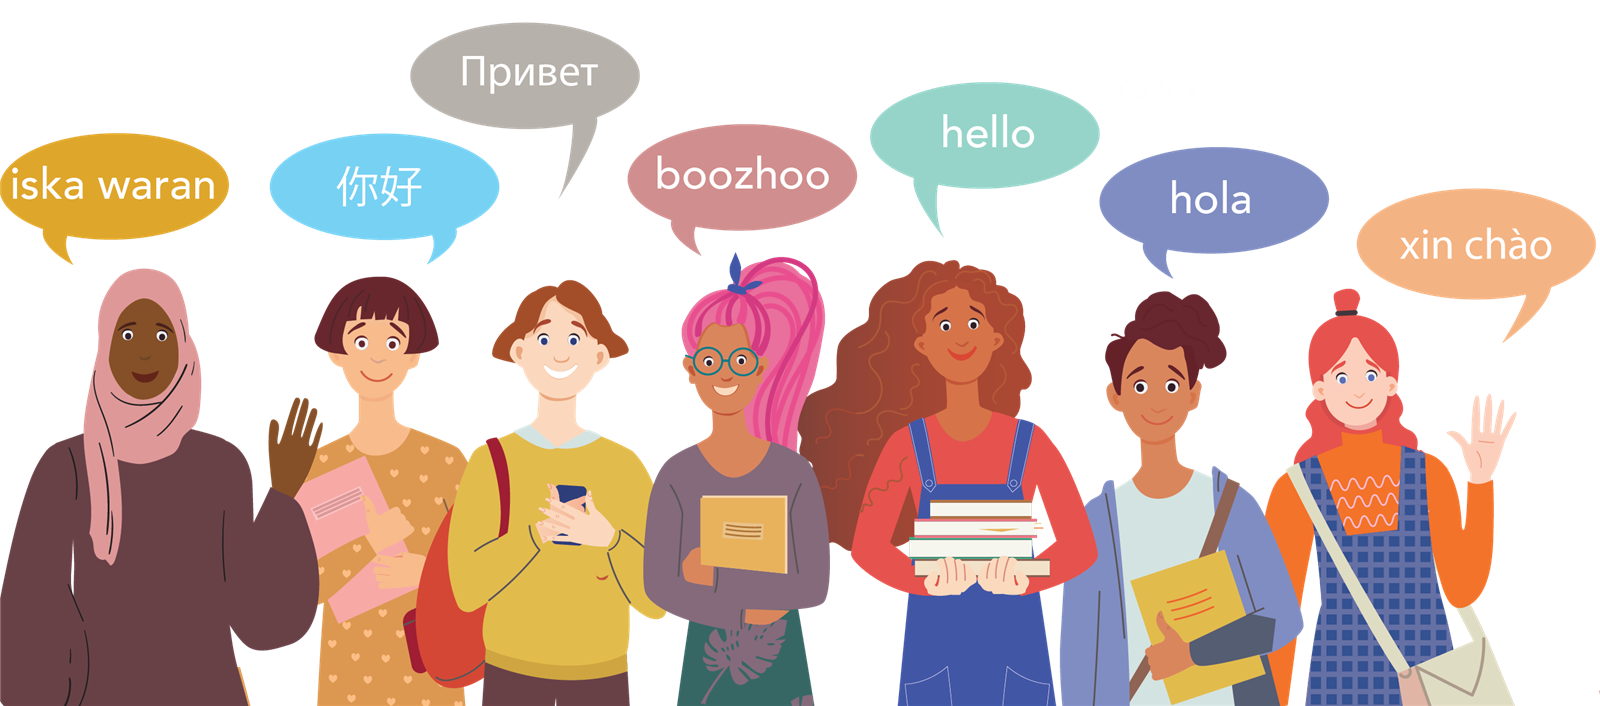 Illustration of people saying hello in different languages